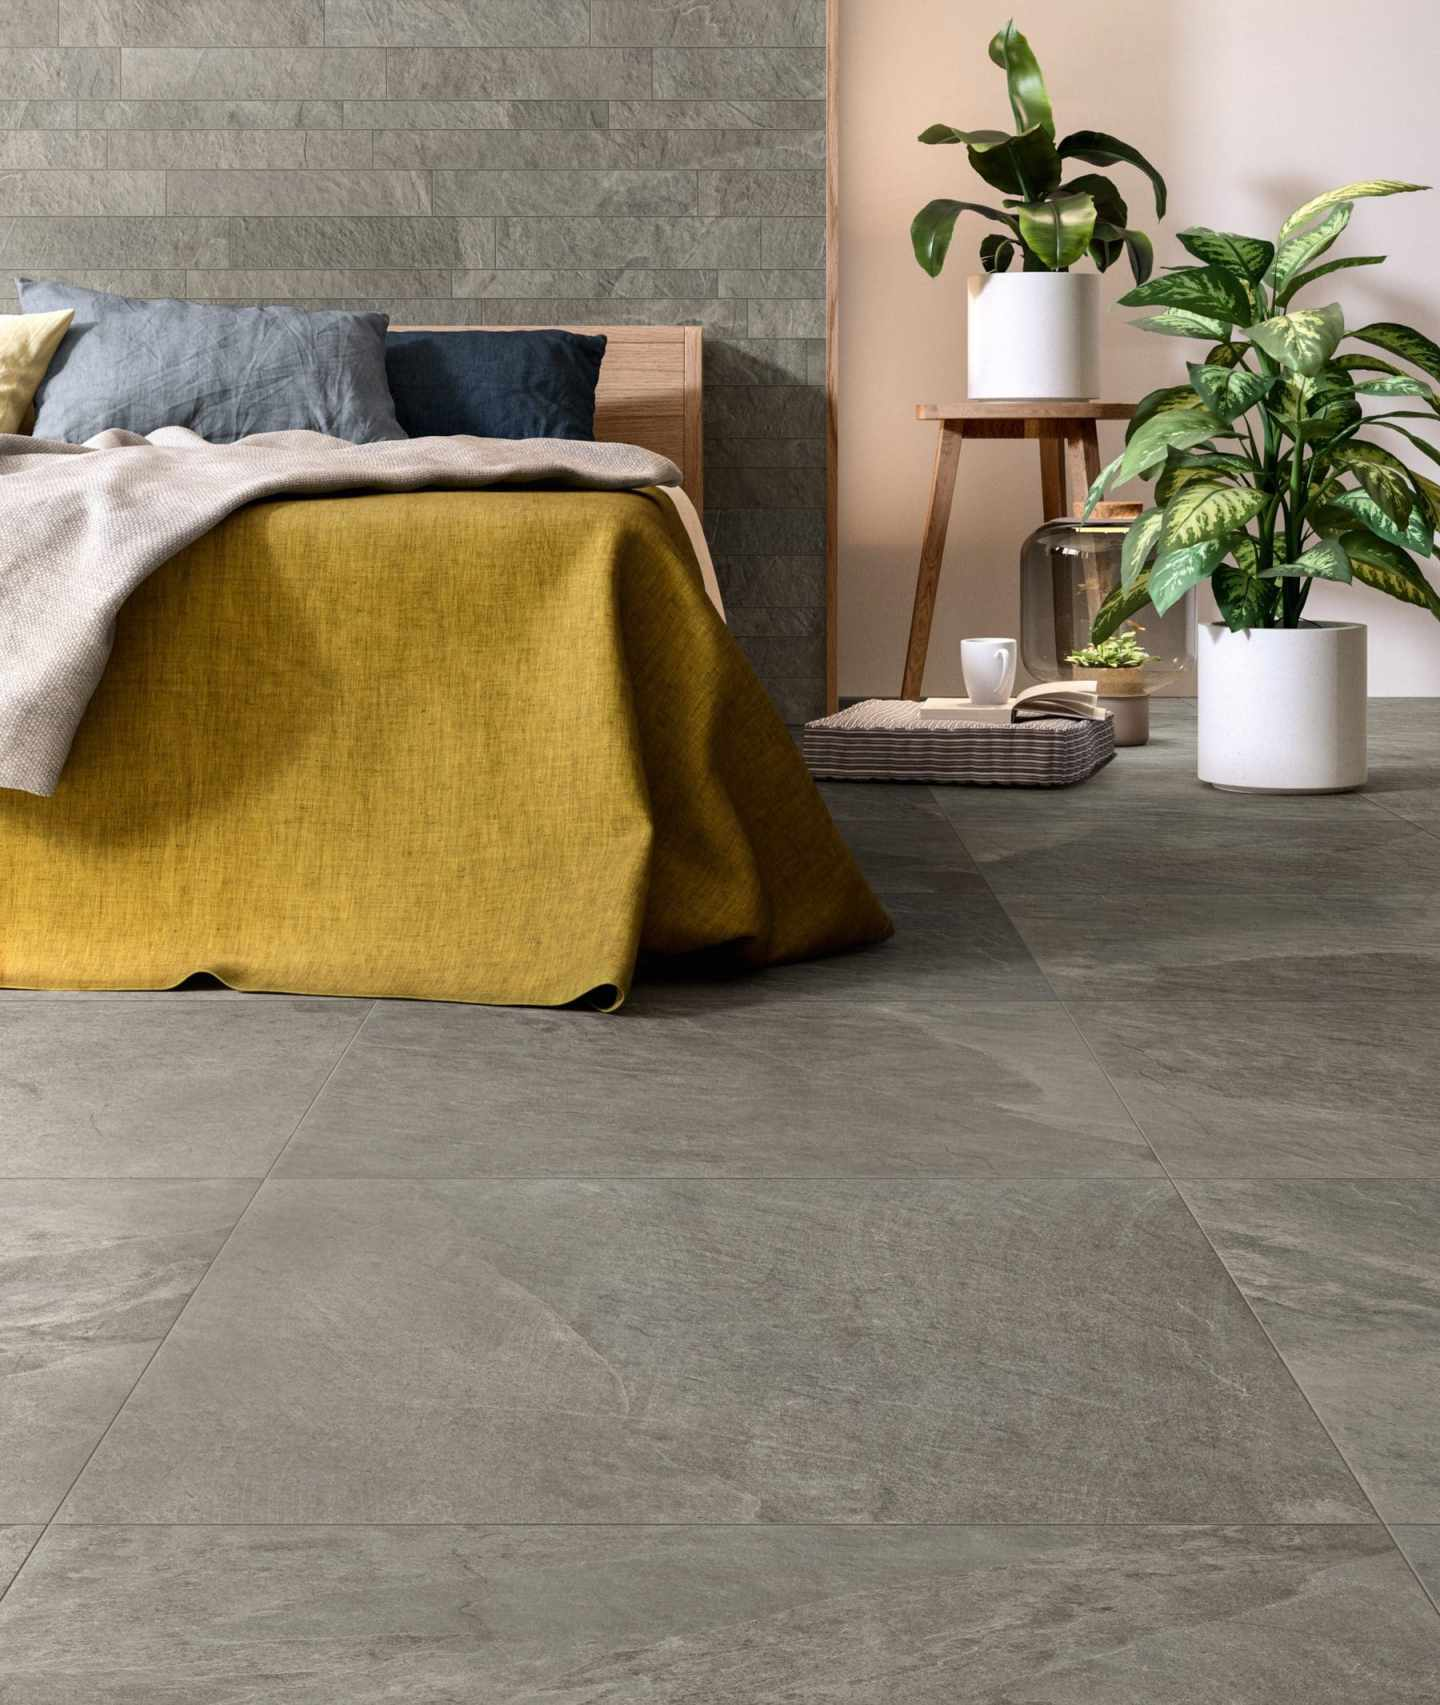 yellow throw in the bedroom with grey slate like tiles on the floor